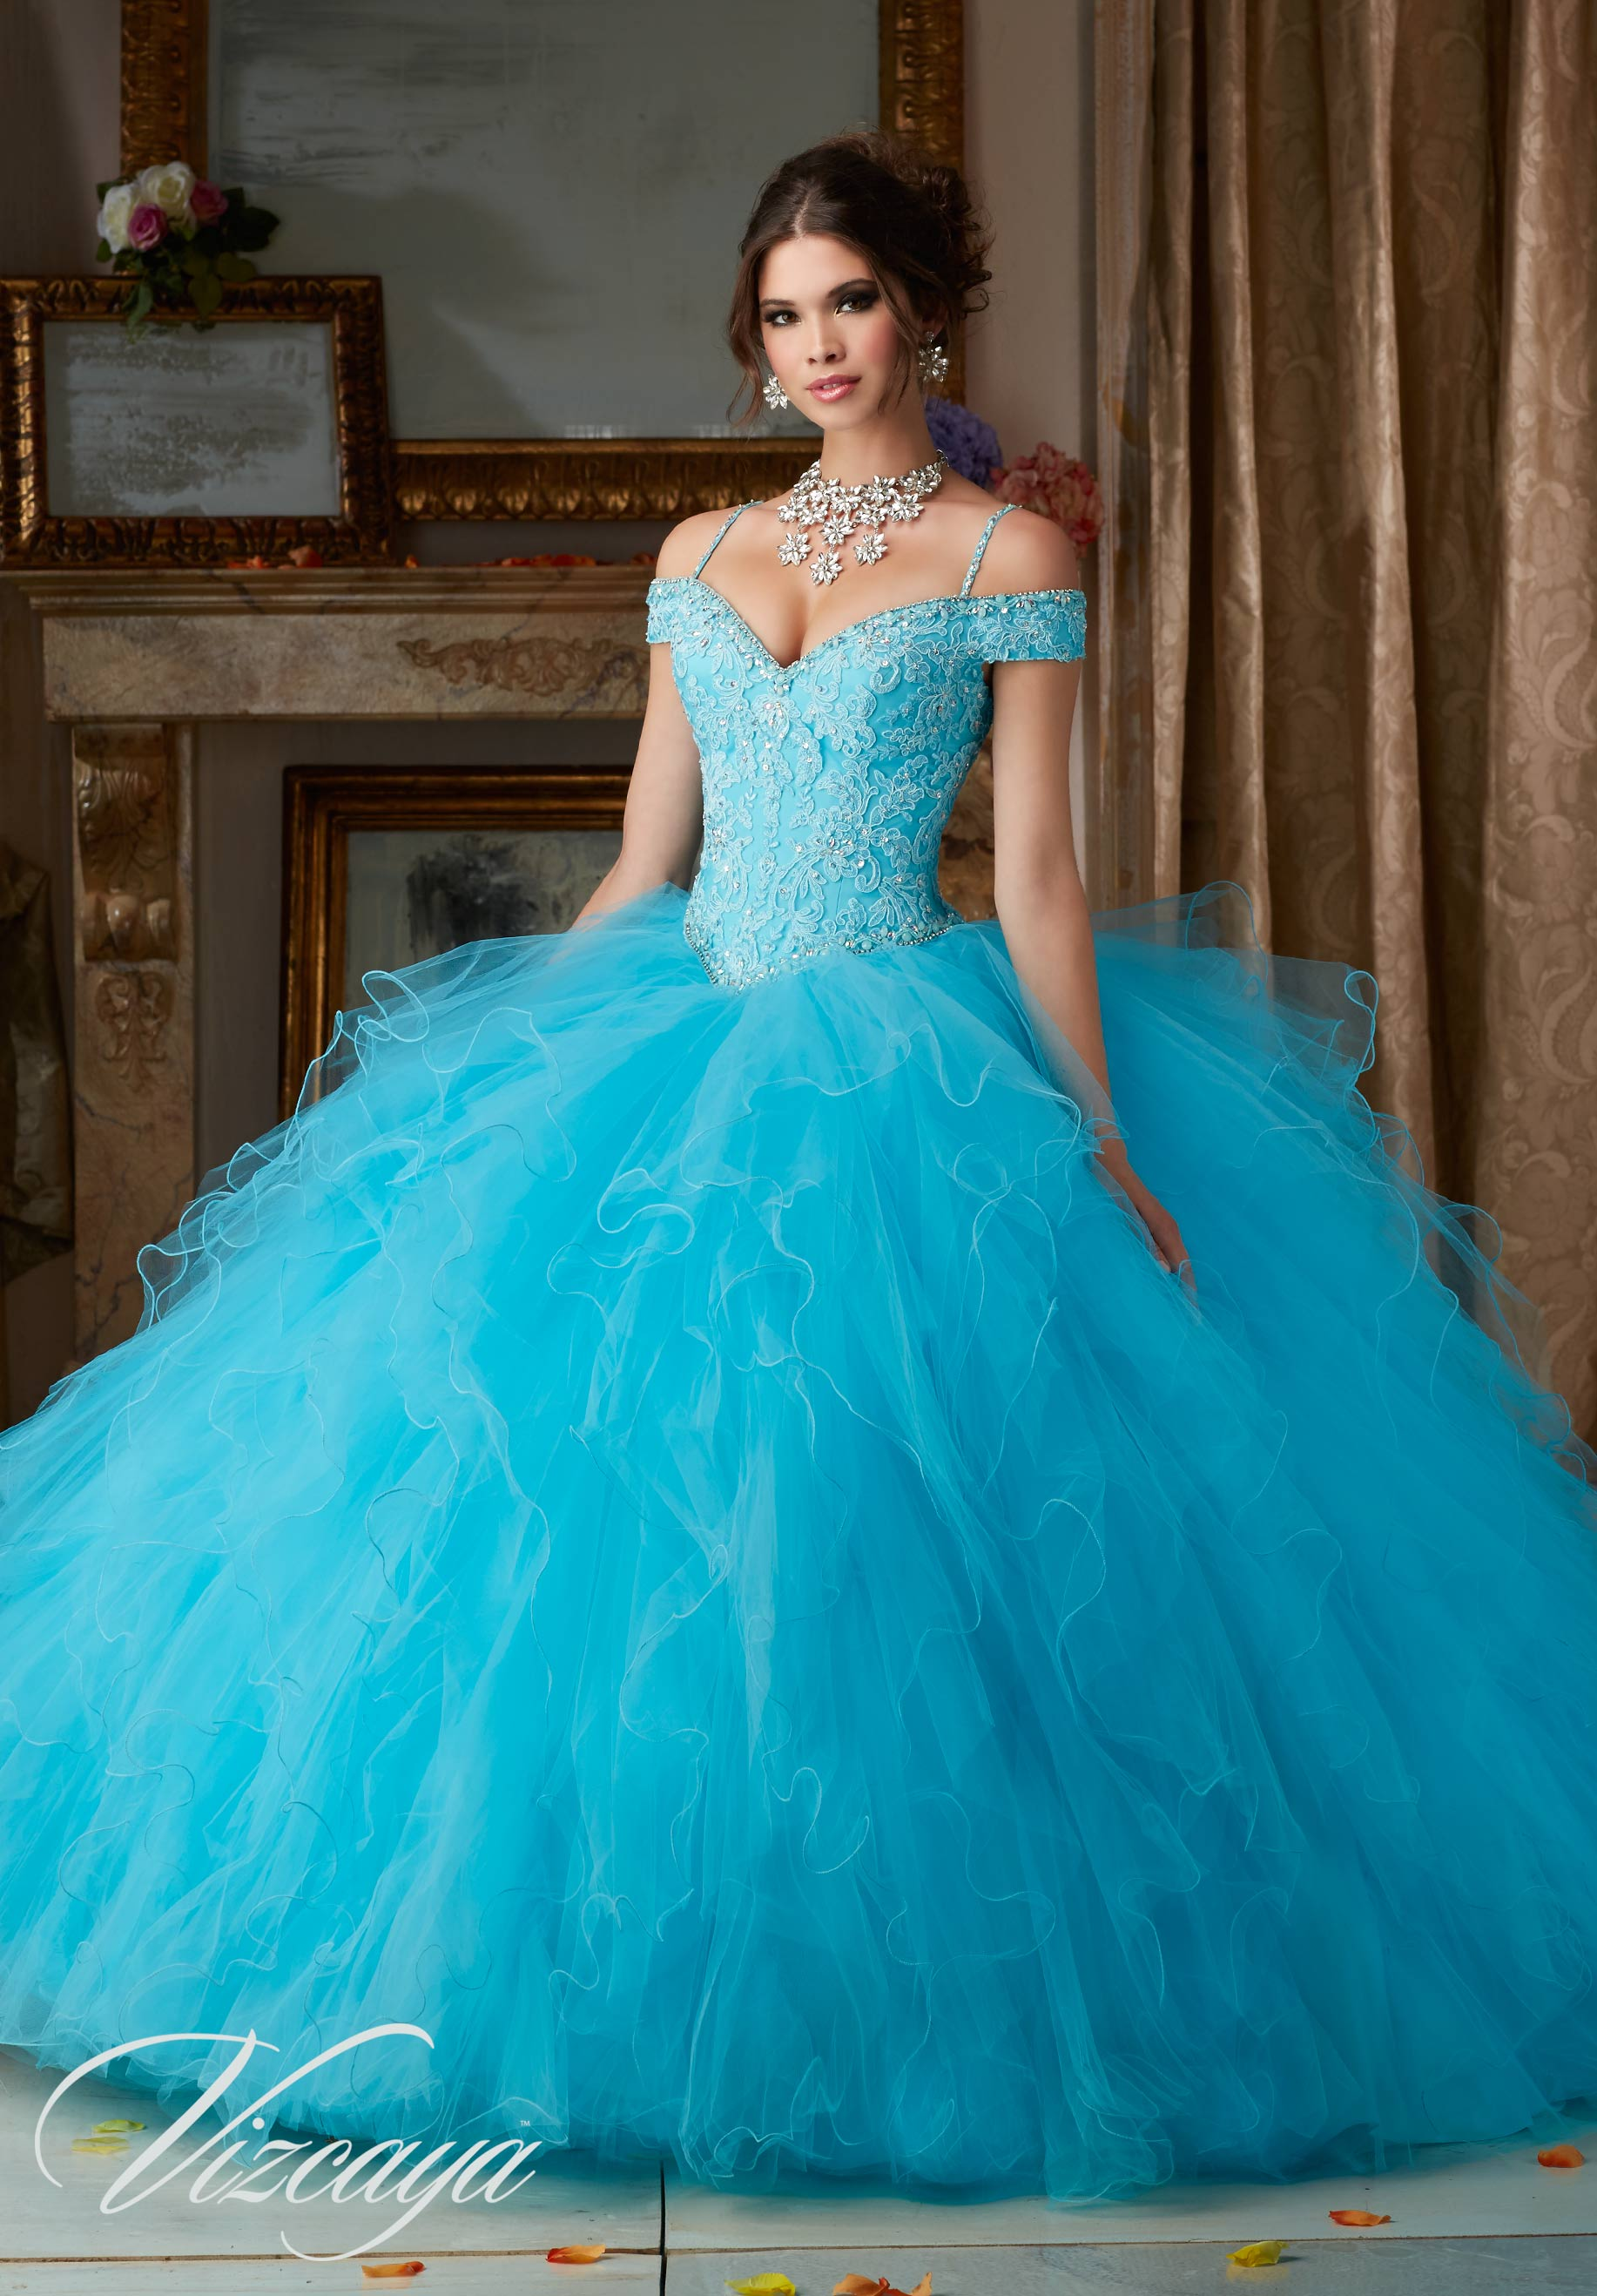 Modern Masquerade Prom Dresses With Mask Crest - All Wedding Dresses ...